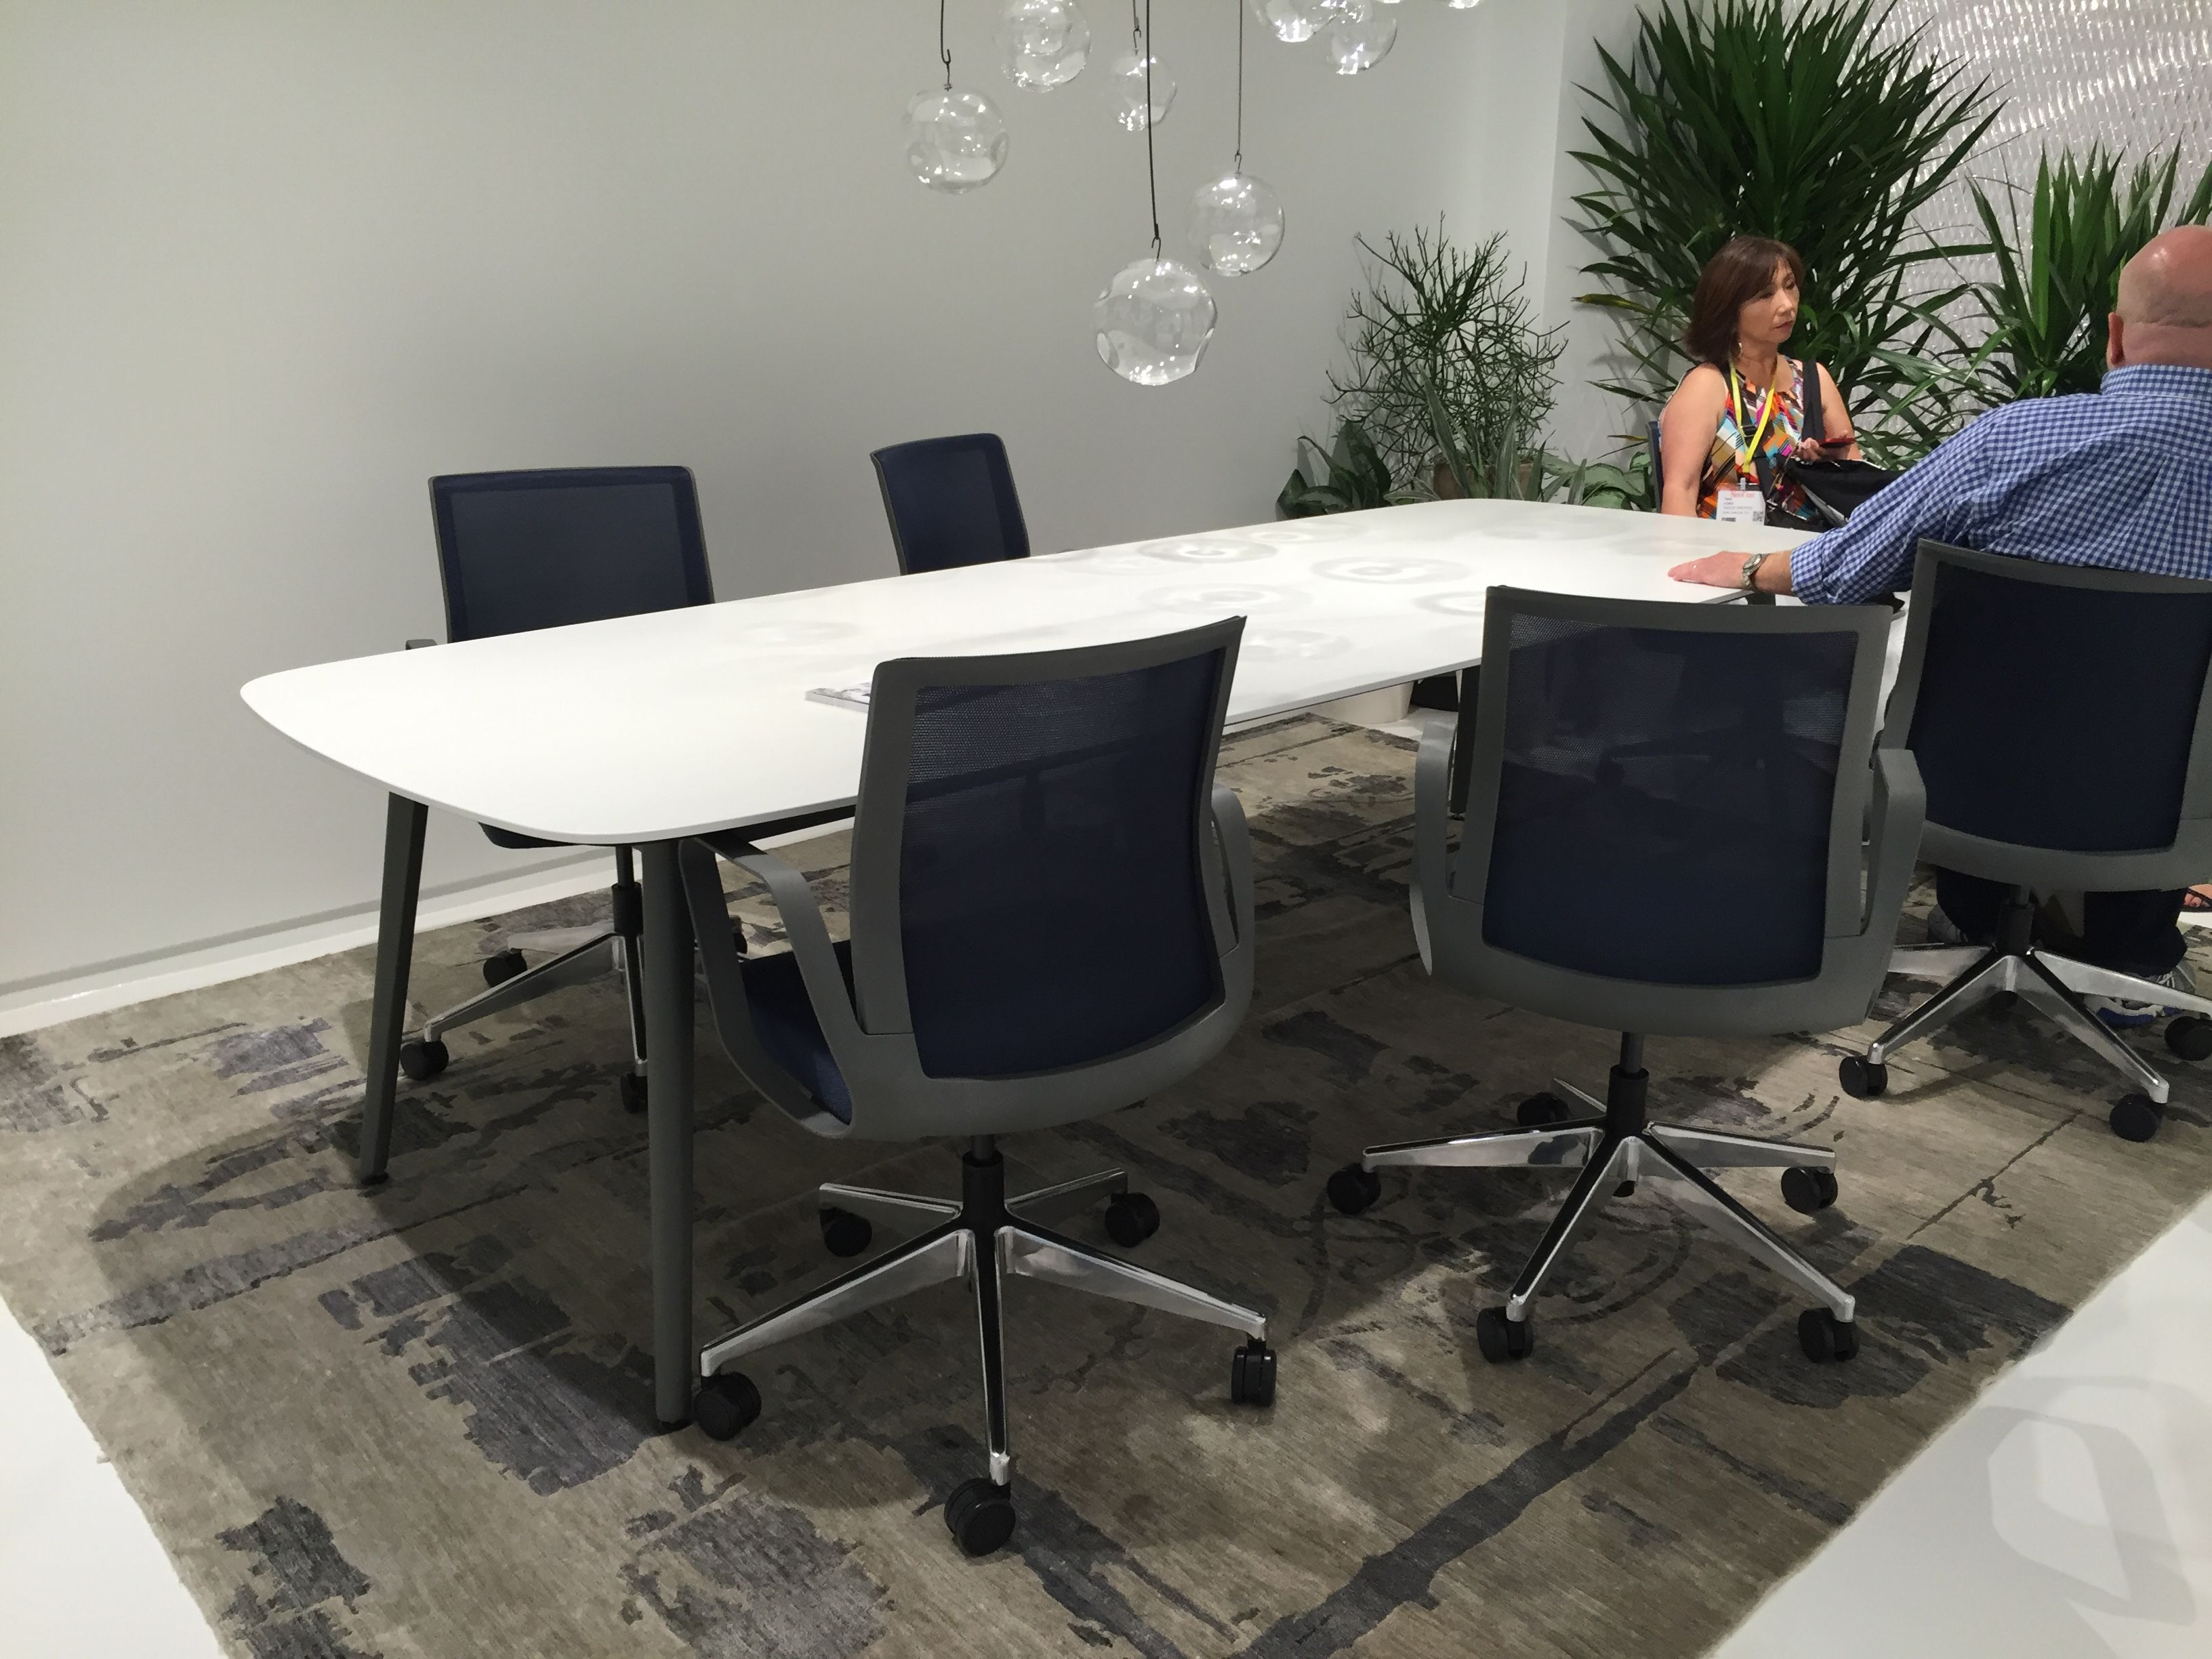 Keilhauer 6C Conference Chair with Syz Table Events